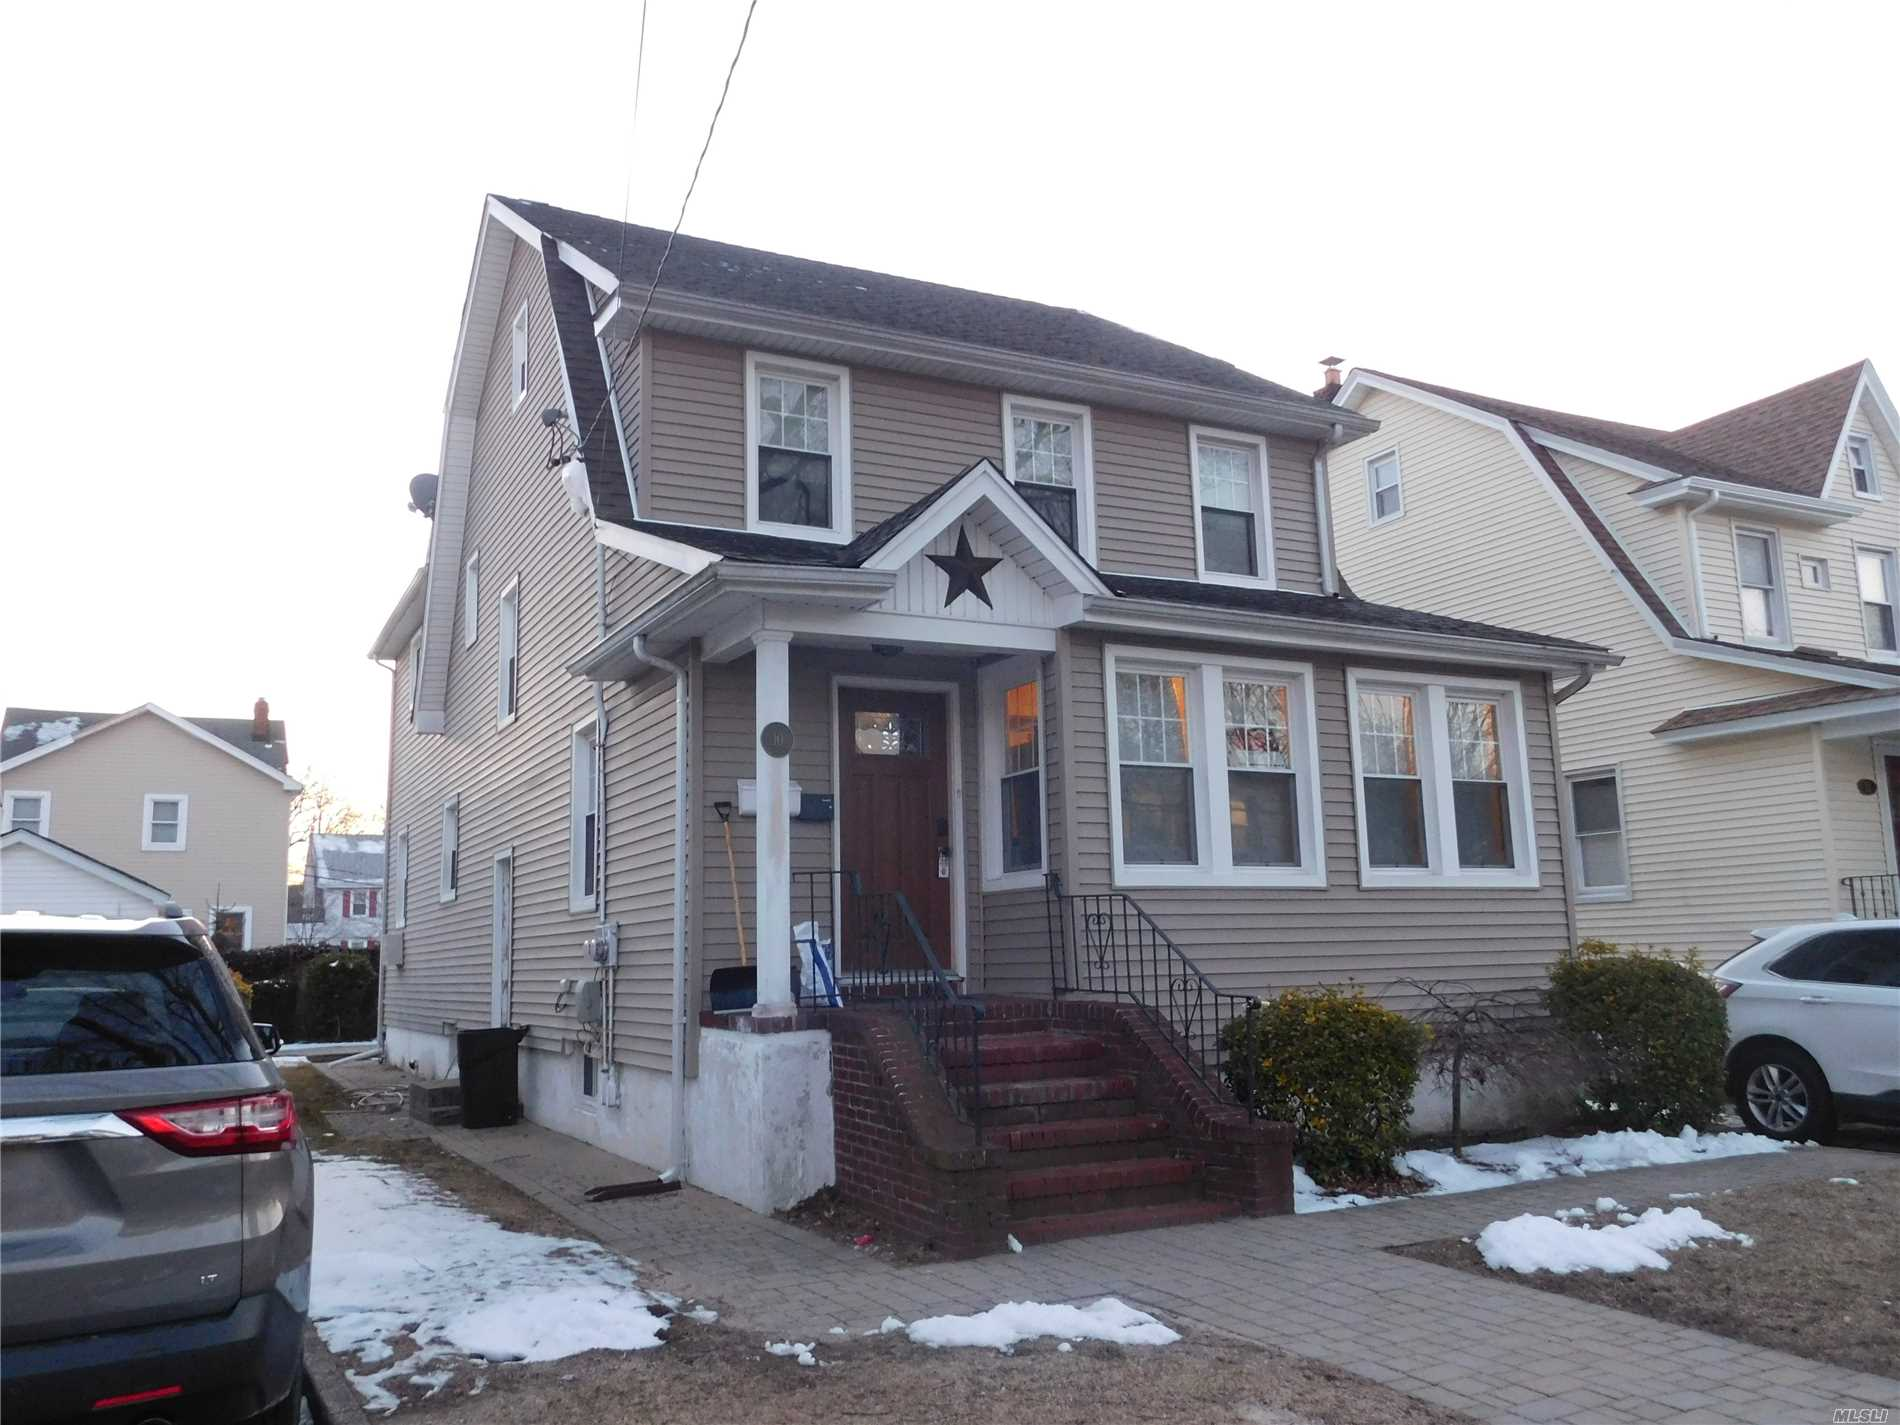 New kitchen 3 Beds 1 bath bonus are. Pets considered at landlords discretion with extra security